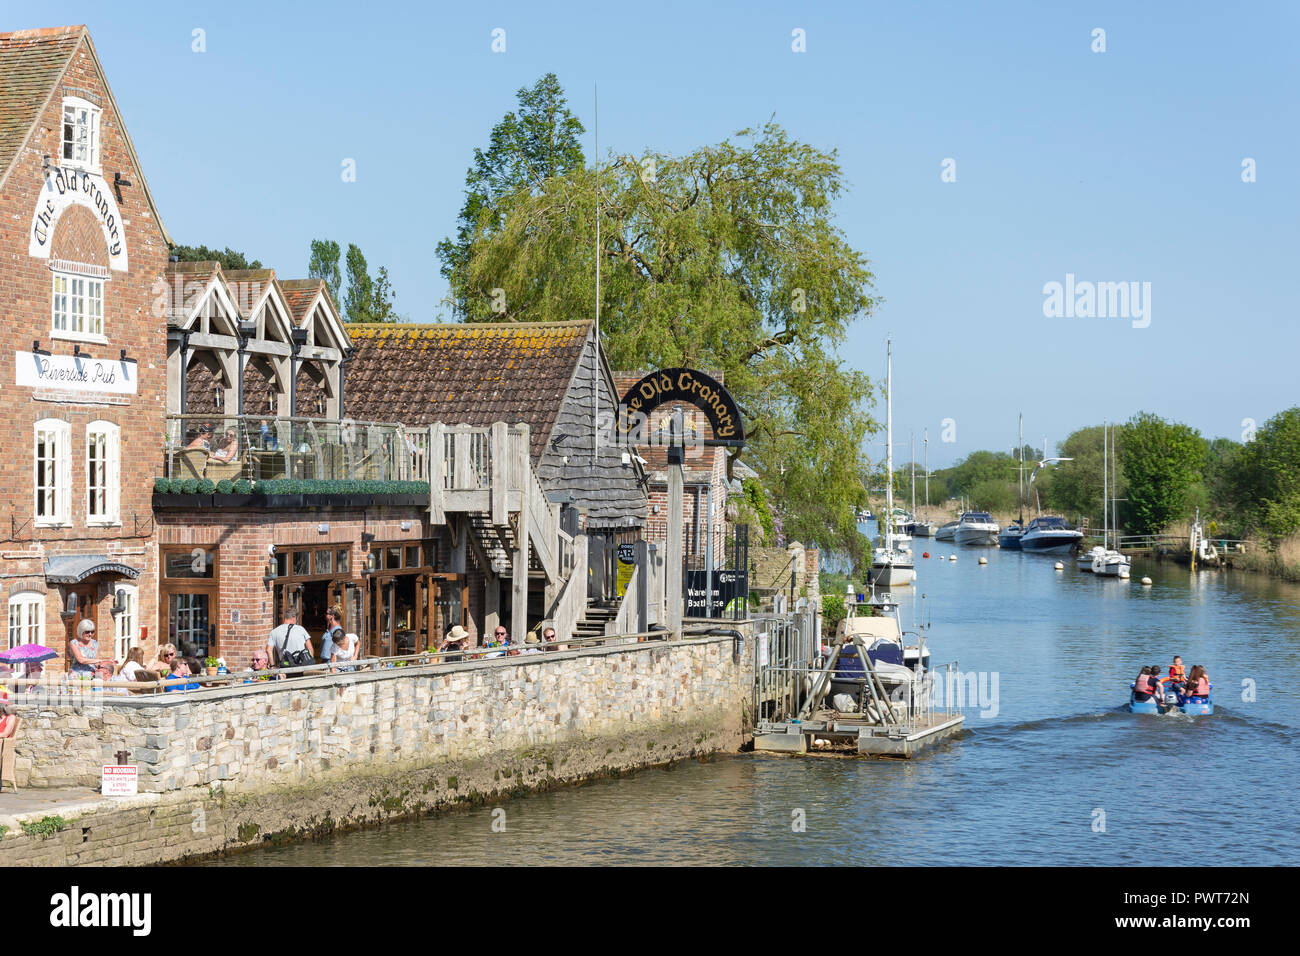 The Old Granary Pub and Frome River, Wareham Quay Wareham, Dorset, England, United Kingdom - Stock Image